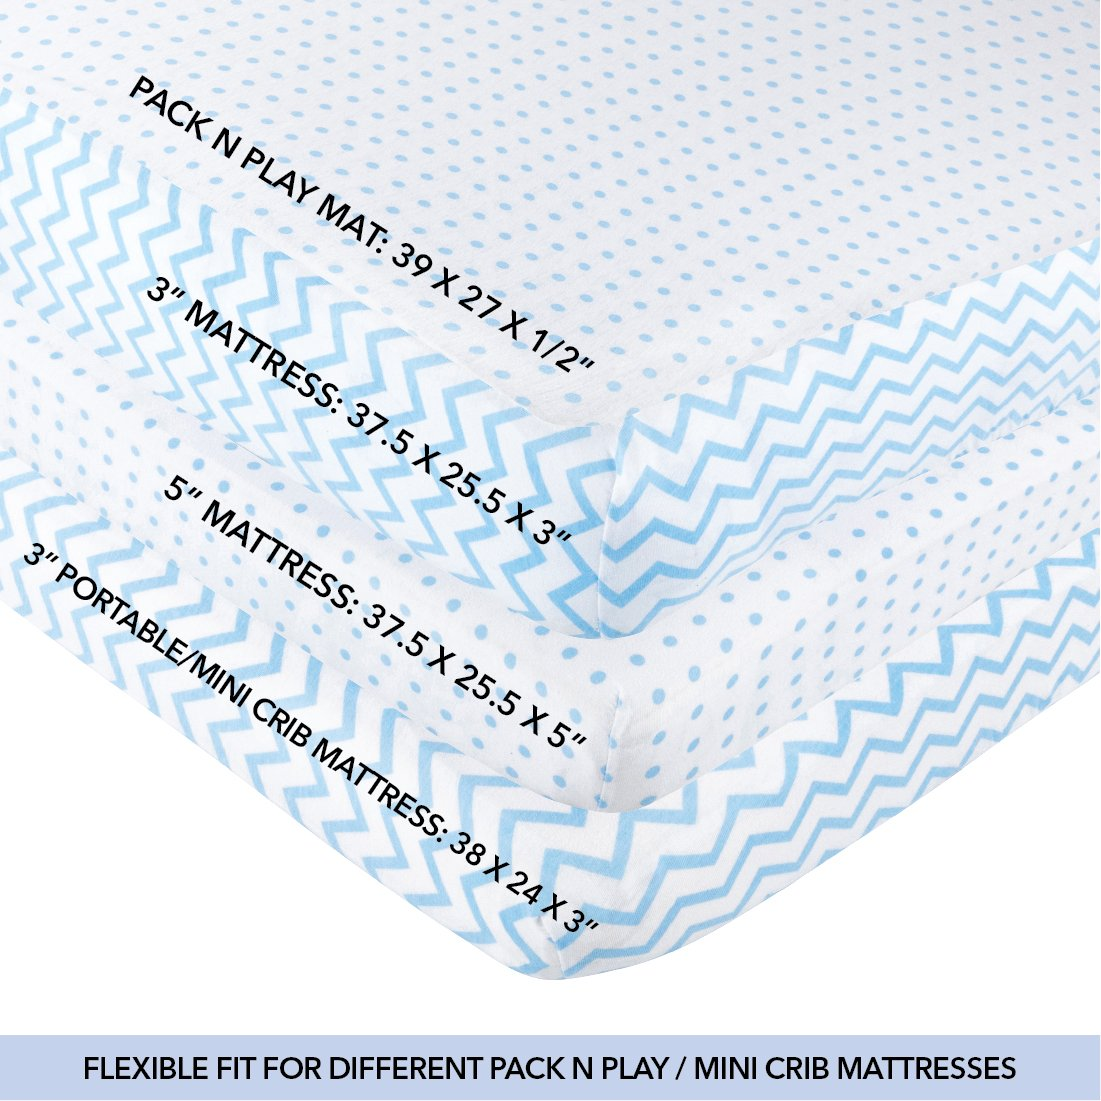 Pack N Play Portable Crib / Mini Crib Sheet Set 100% Jersey Cotton for Baby Boy by Ely's & Co. - Blue Chevron and Polka Dot 2 Pack by Ely's & Co (Image #4)